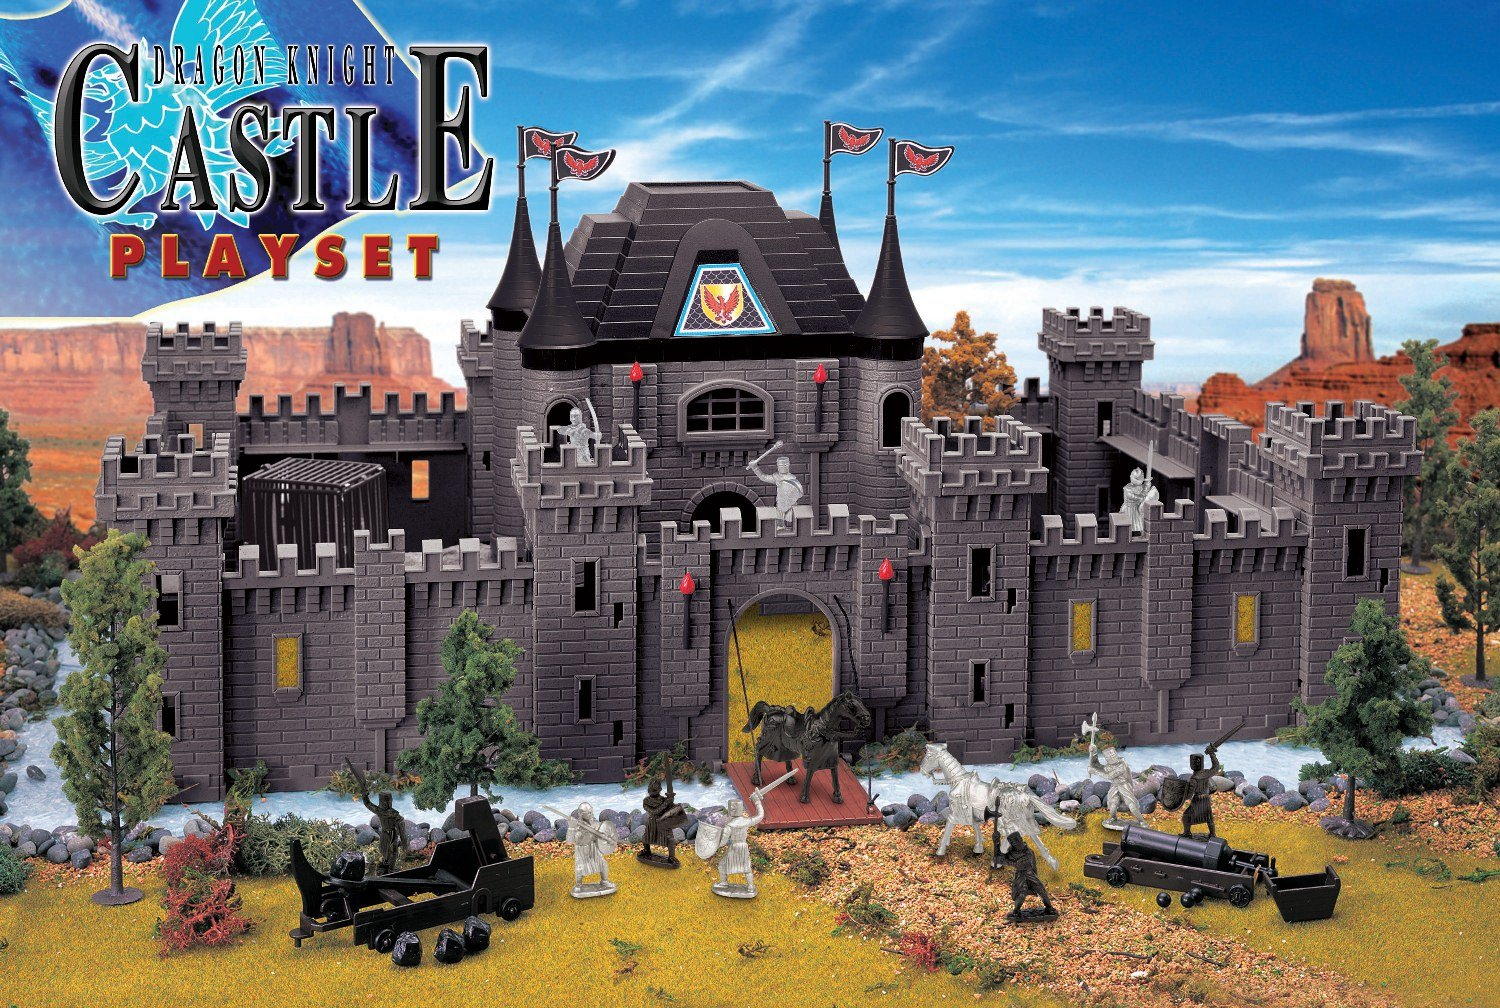 Toy Castles For Boys : New toy major deluxe jumbo dragon knight castle playset